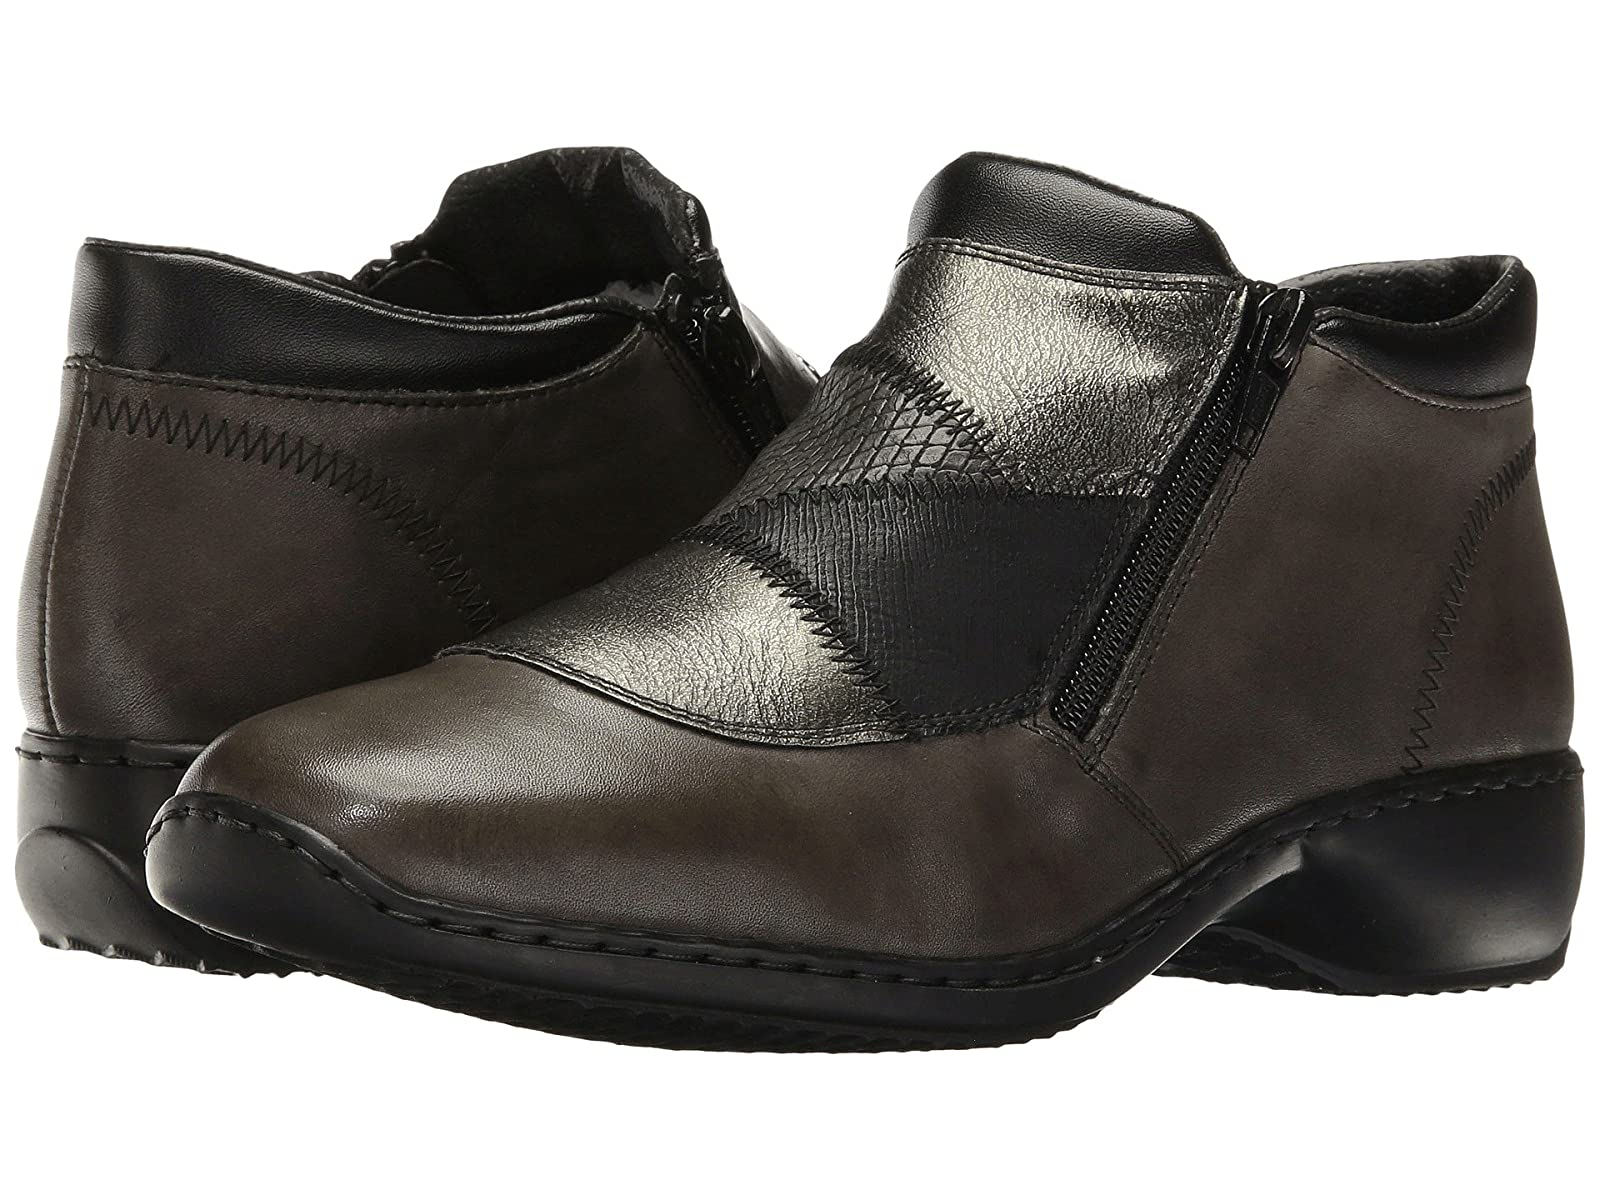 Rieker L3860Cheap and distinctive eye-catching shoes